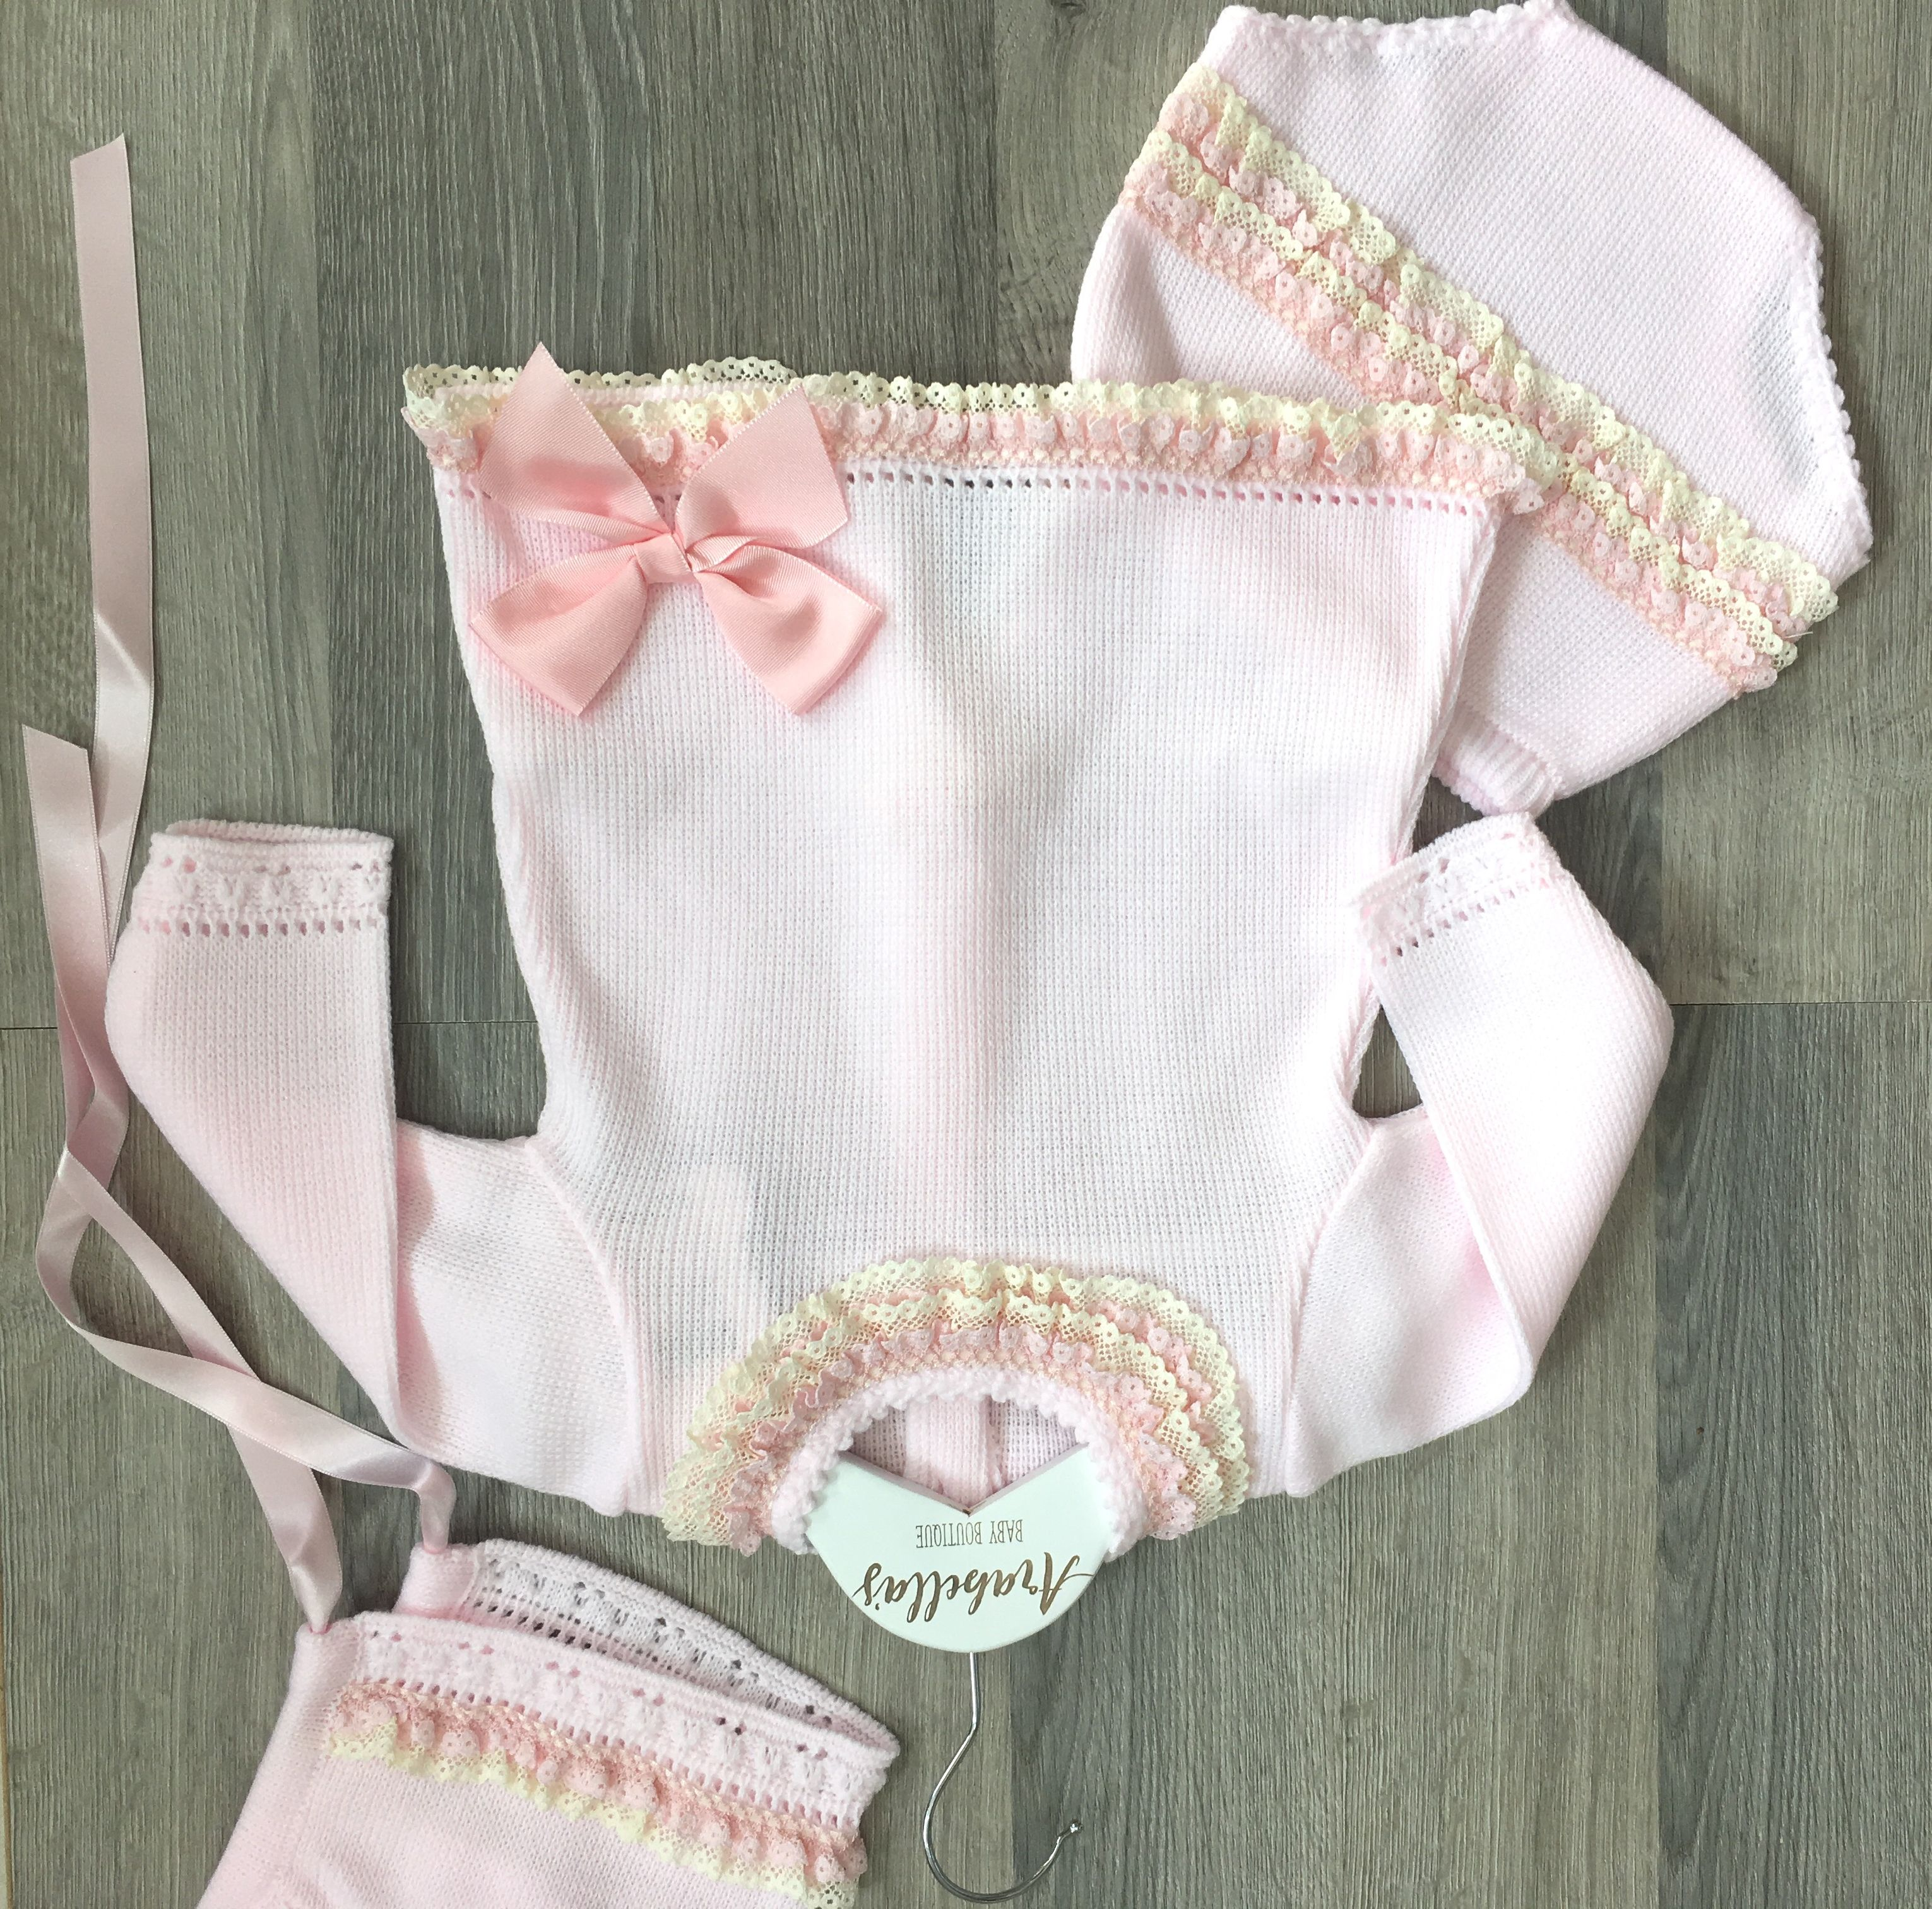 Cha o baby 3 piece knitted jam pant set with bonnet spanish baby